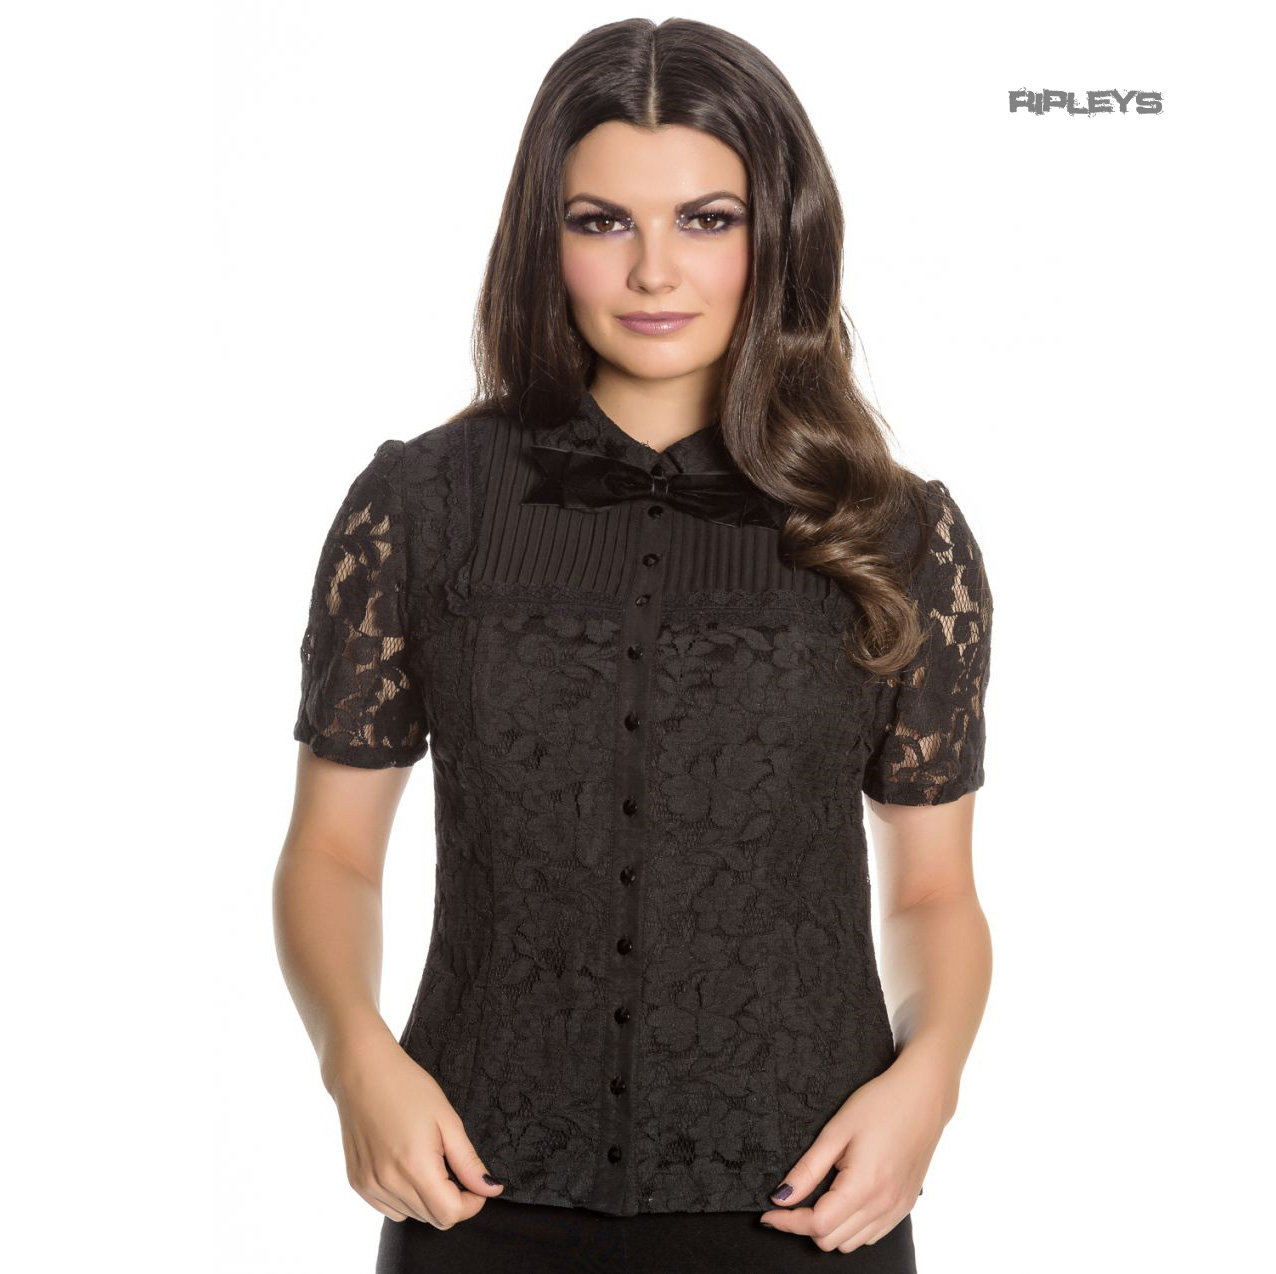 Hell-Bunny-Spin-Doctor-Vampire-Gothic-Shirt-Top-ROWENA-Lace-Blouse-All-Sizes Indexbild 14